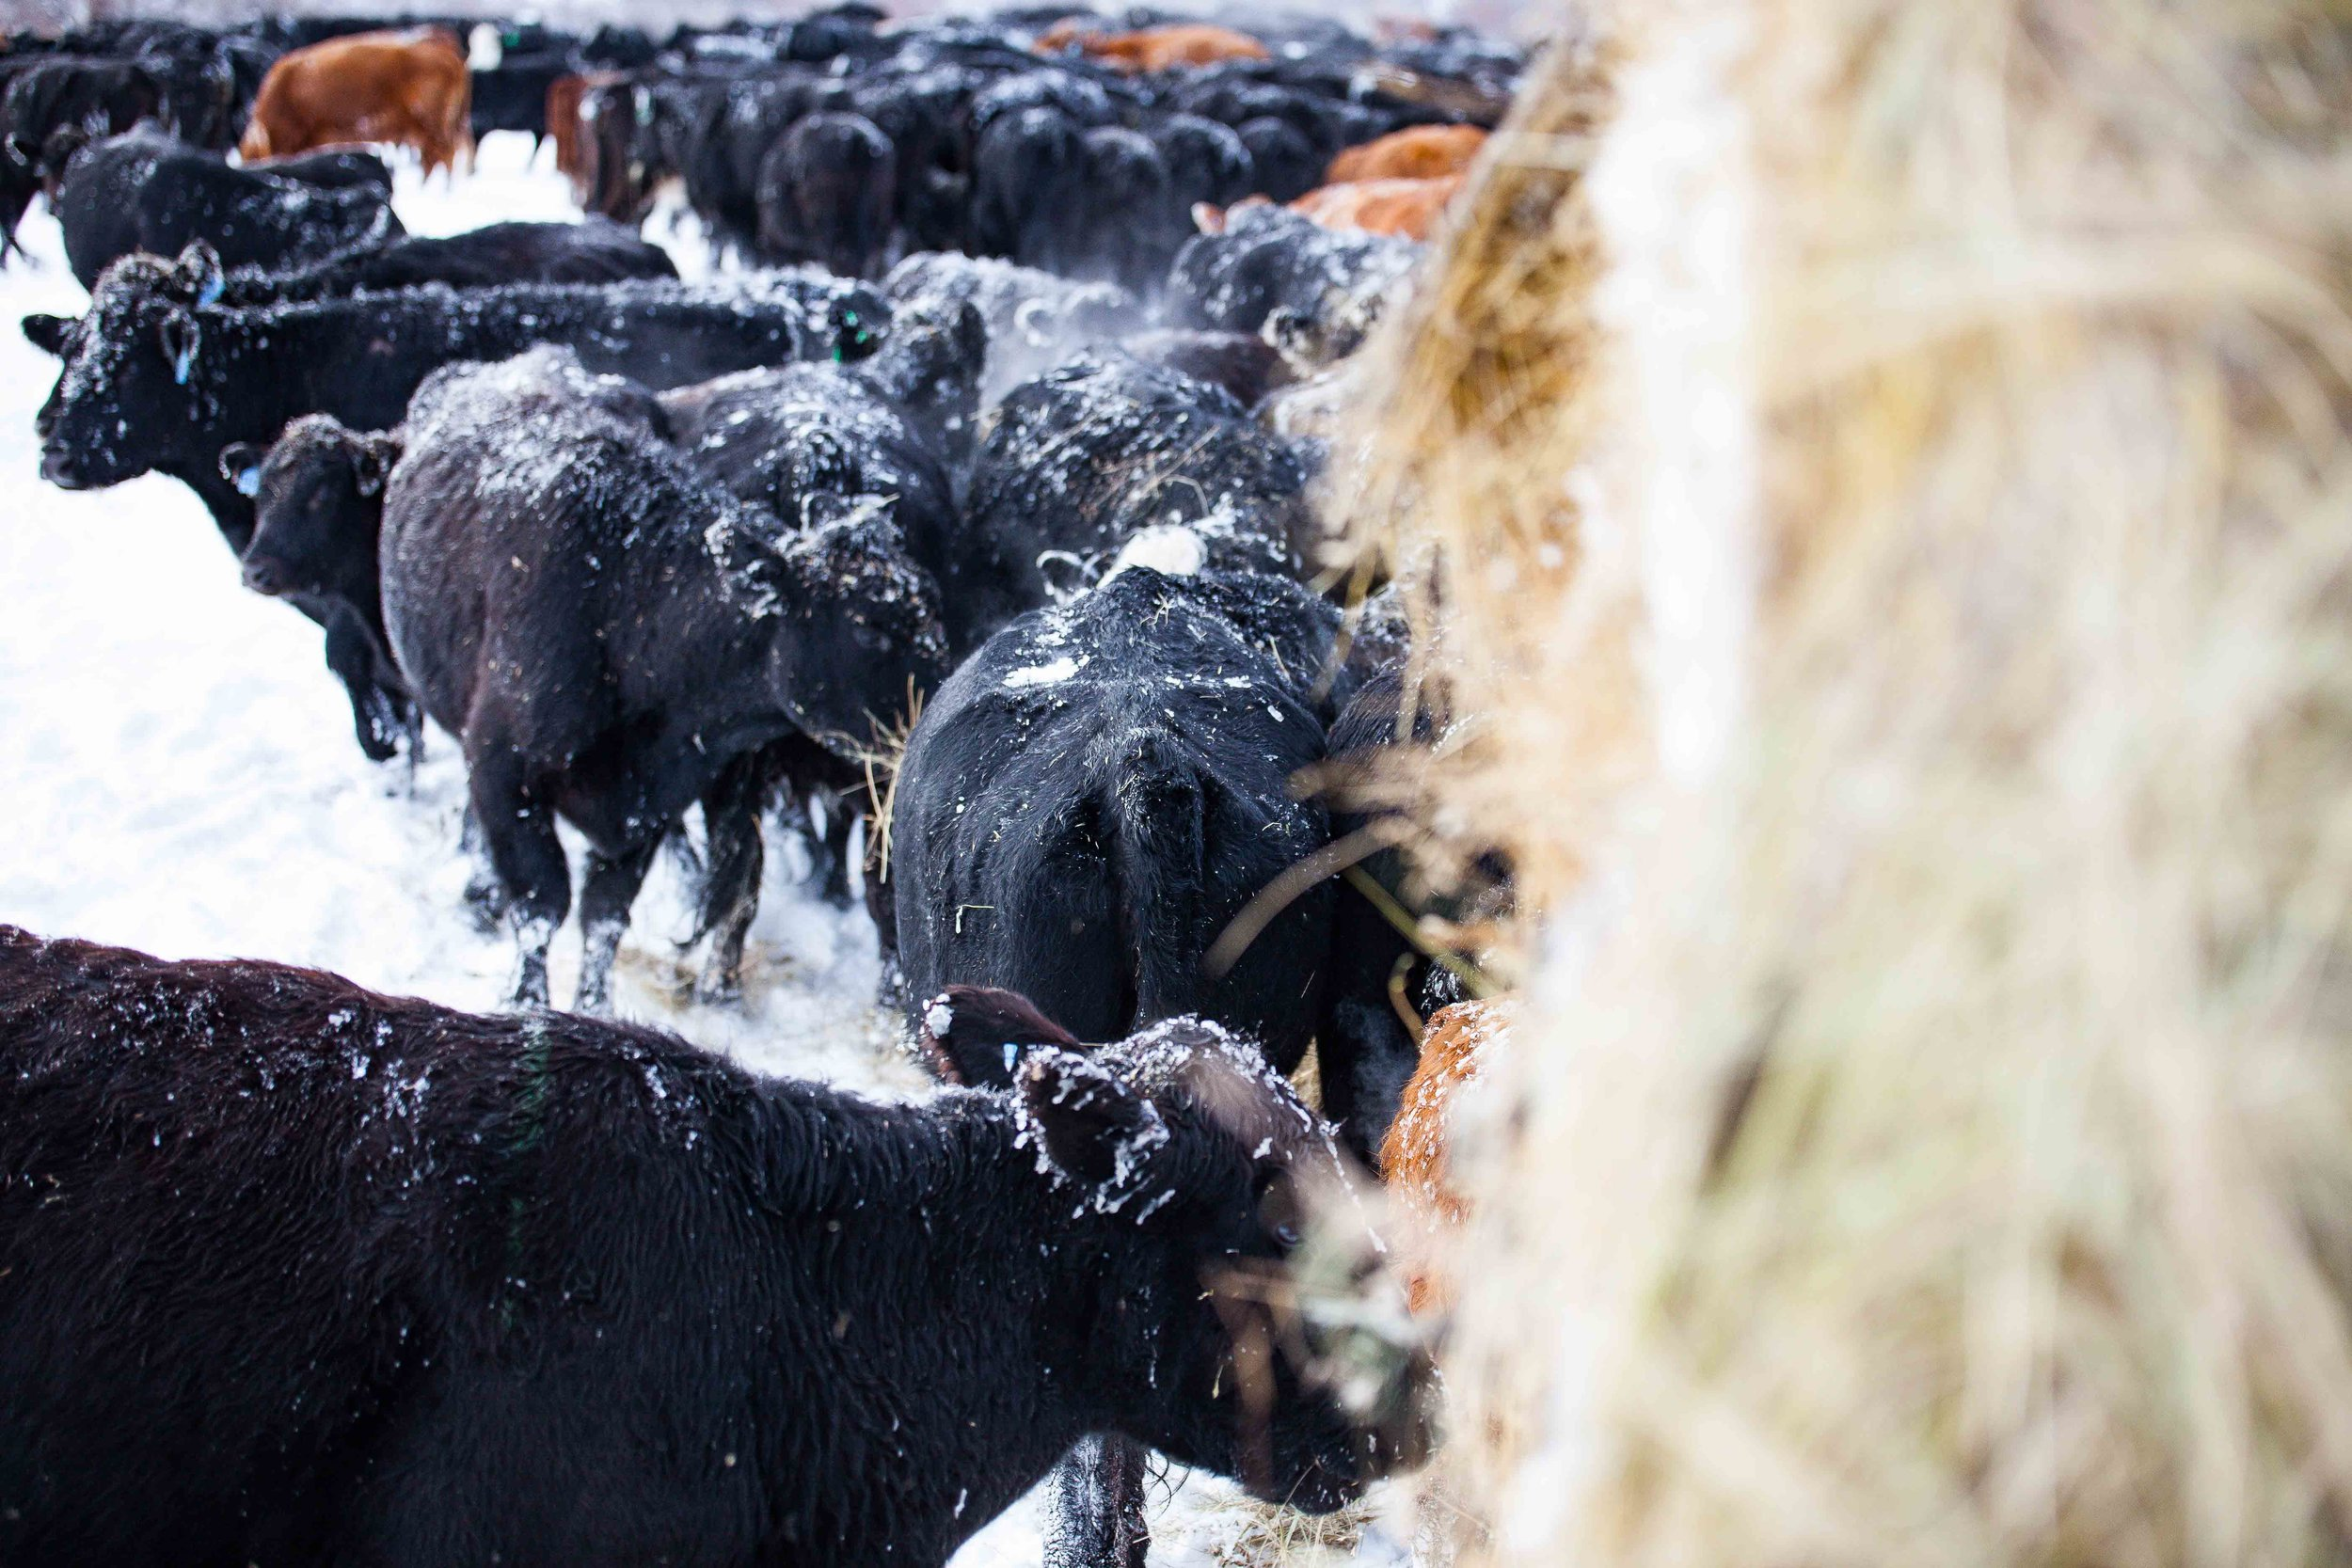 Cows surround the feed truck like a zombie apocalypse.